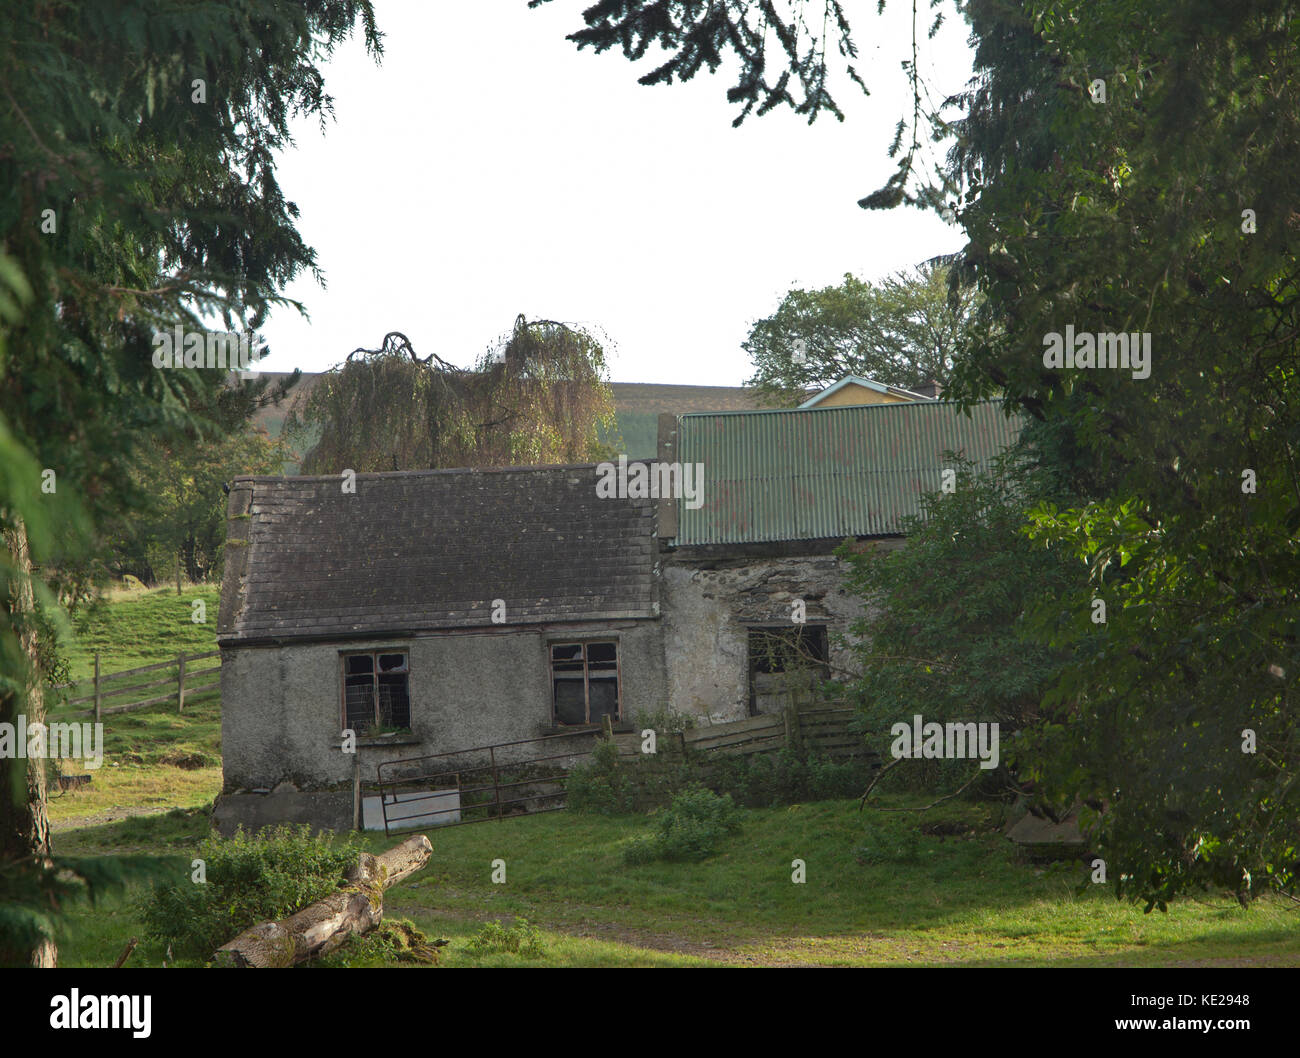 Abandoned Farm House In Ireland High Resolution Stock Photography And Images Alamy